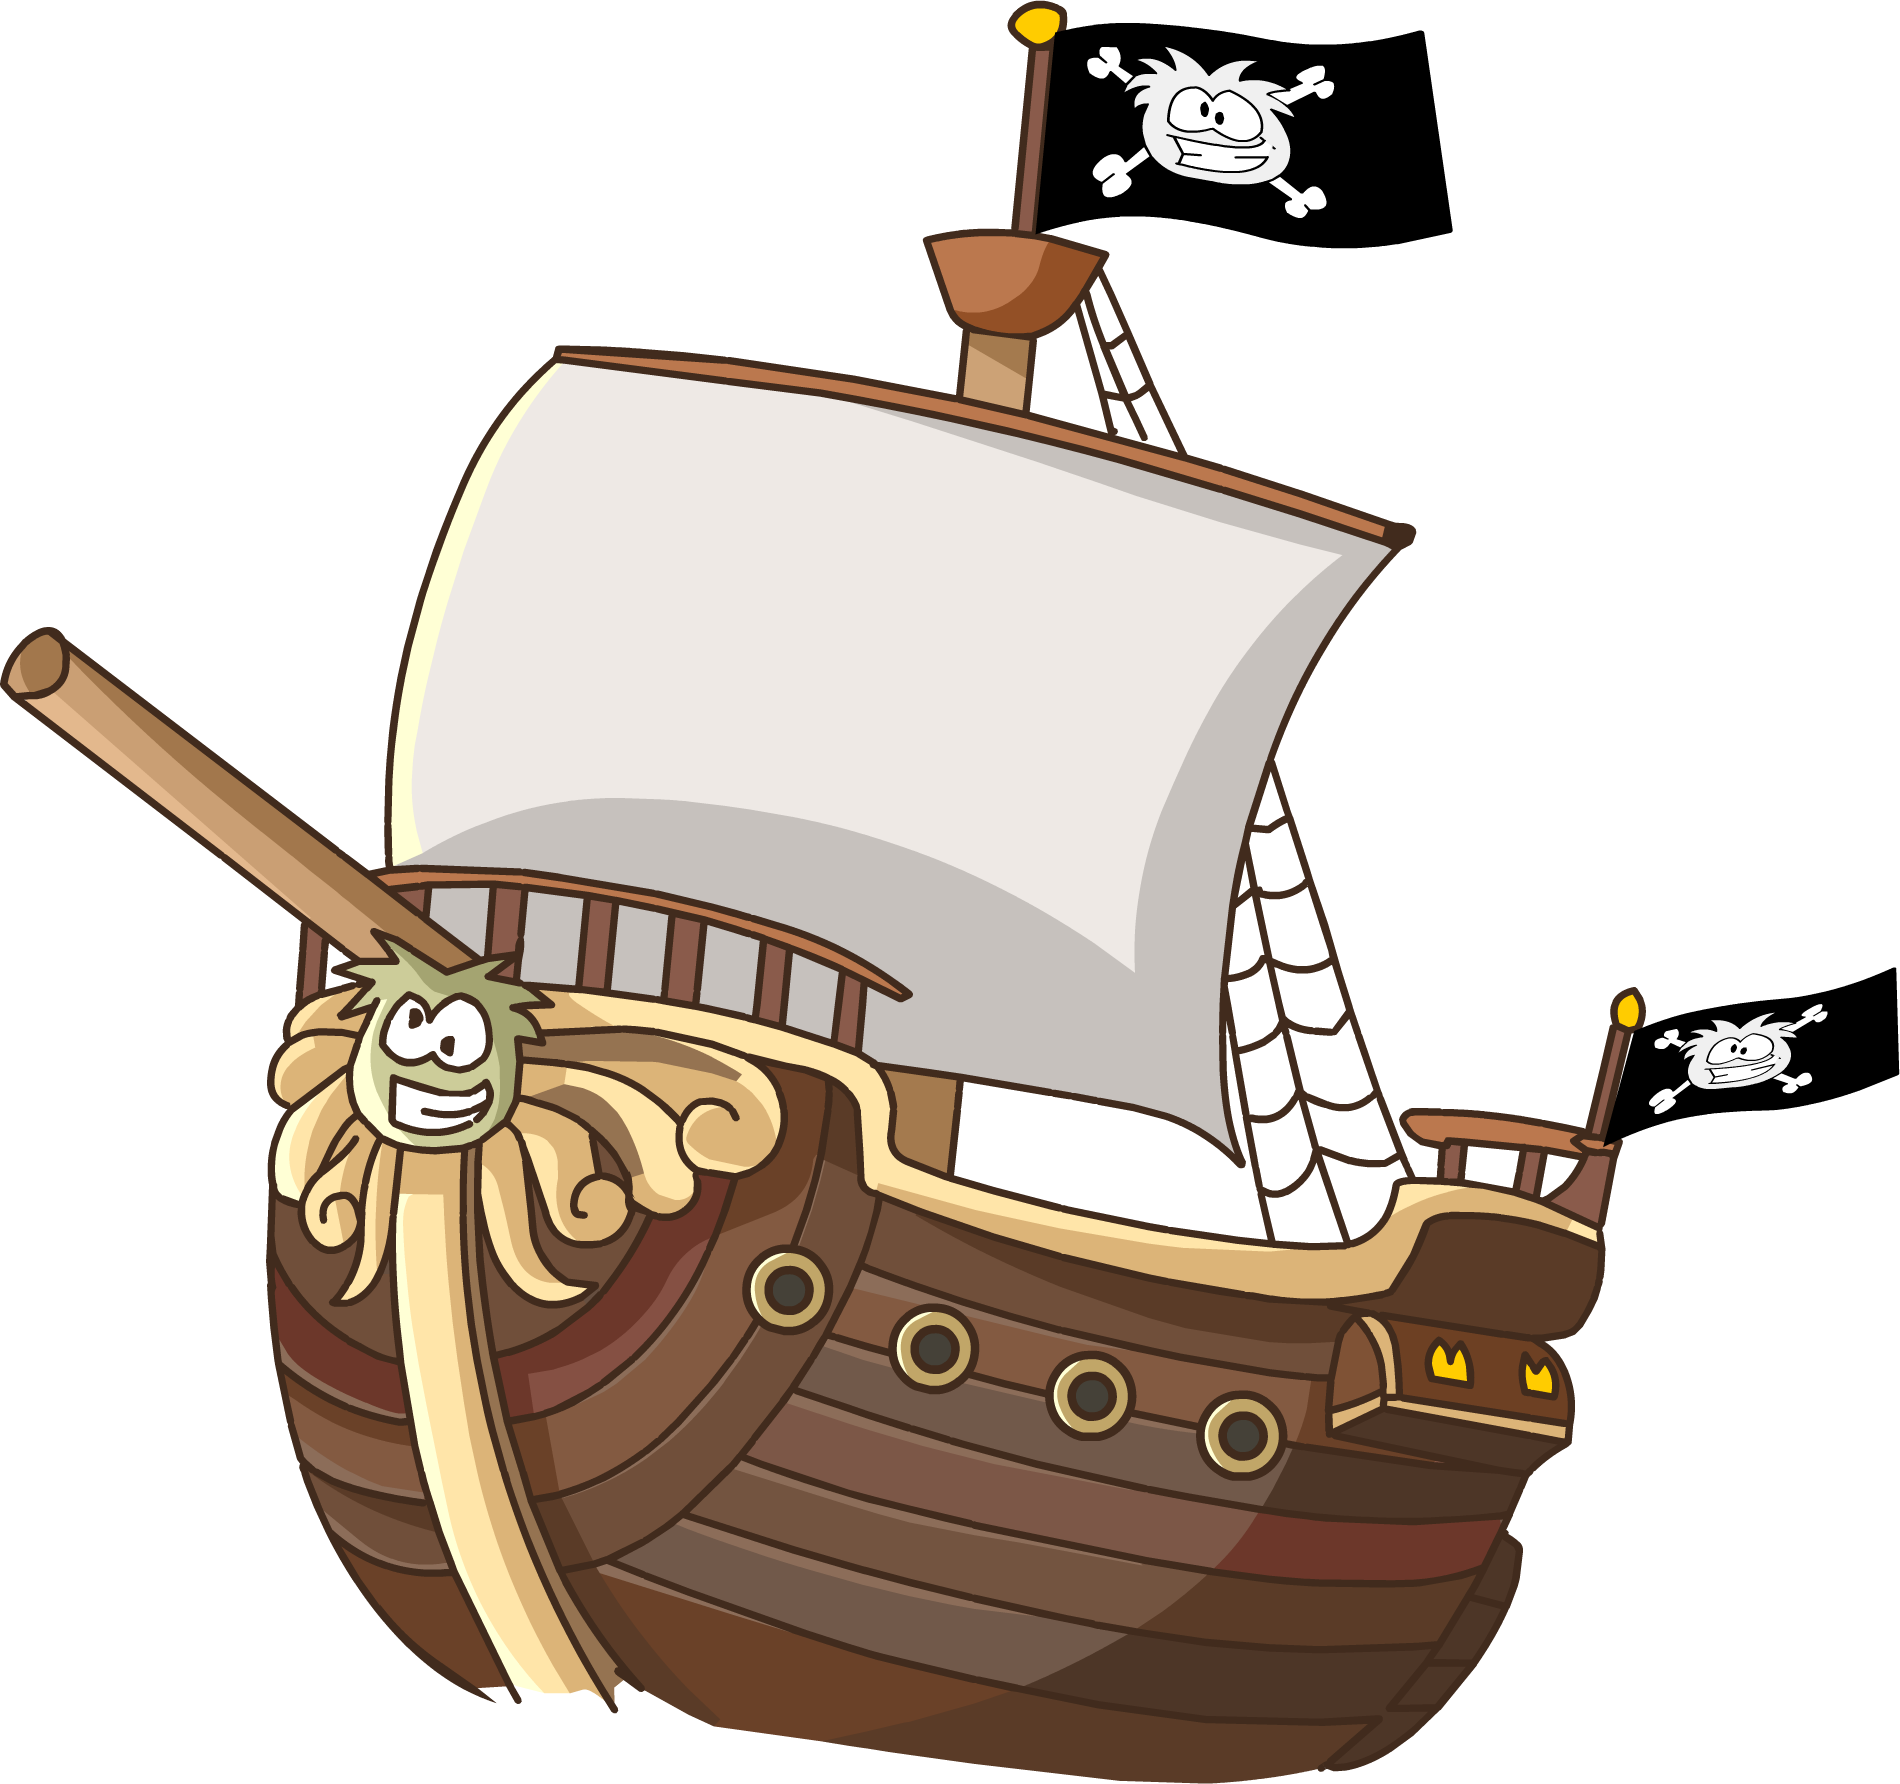 Image migrator in medieval. Square clipart animated